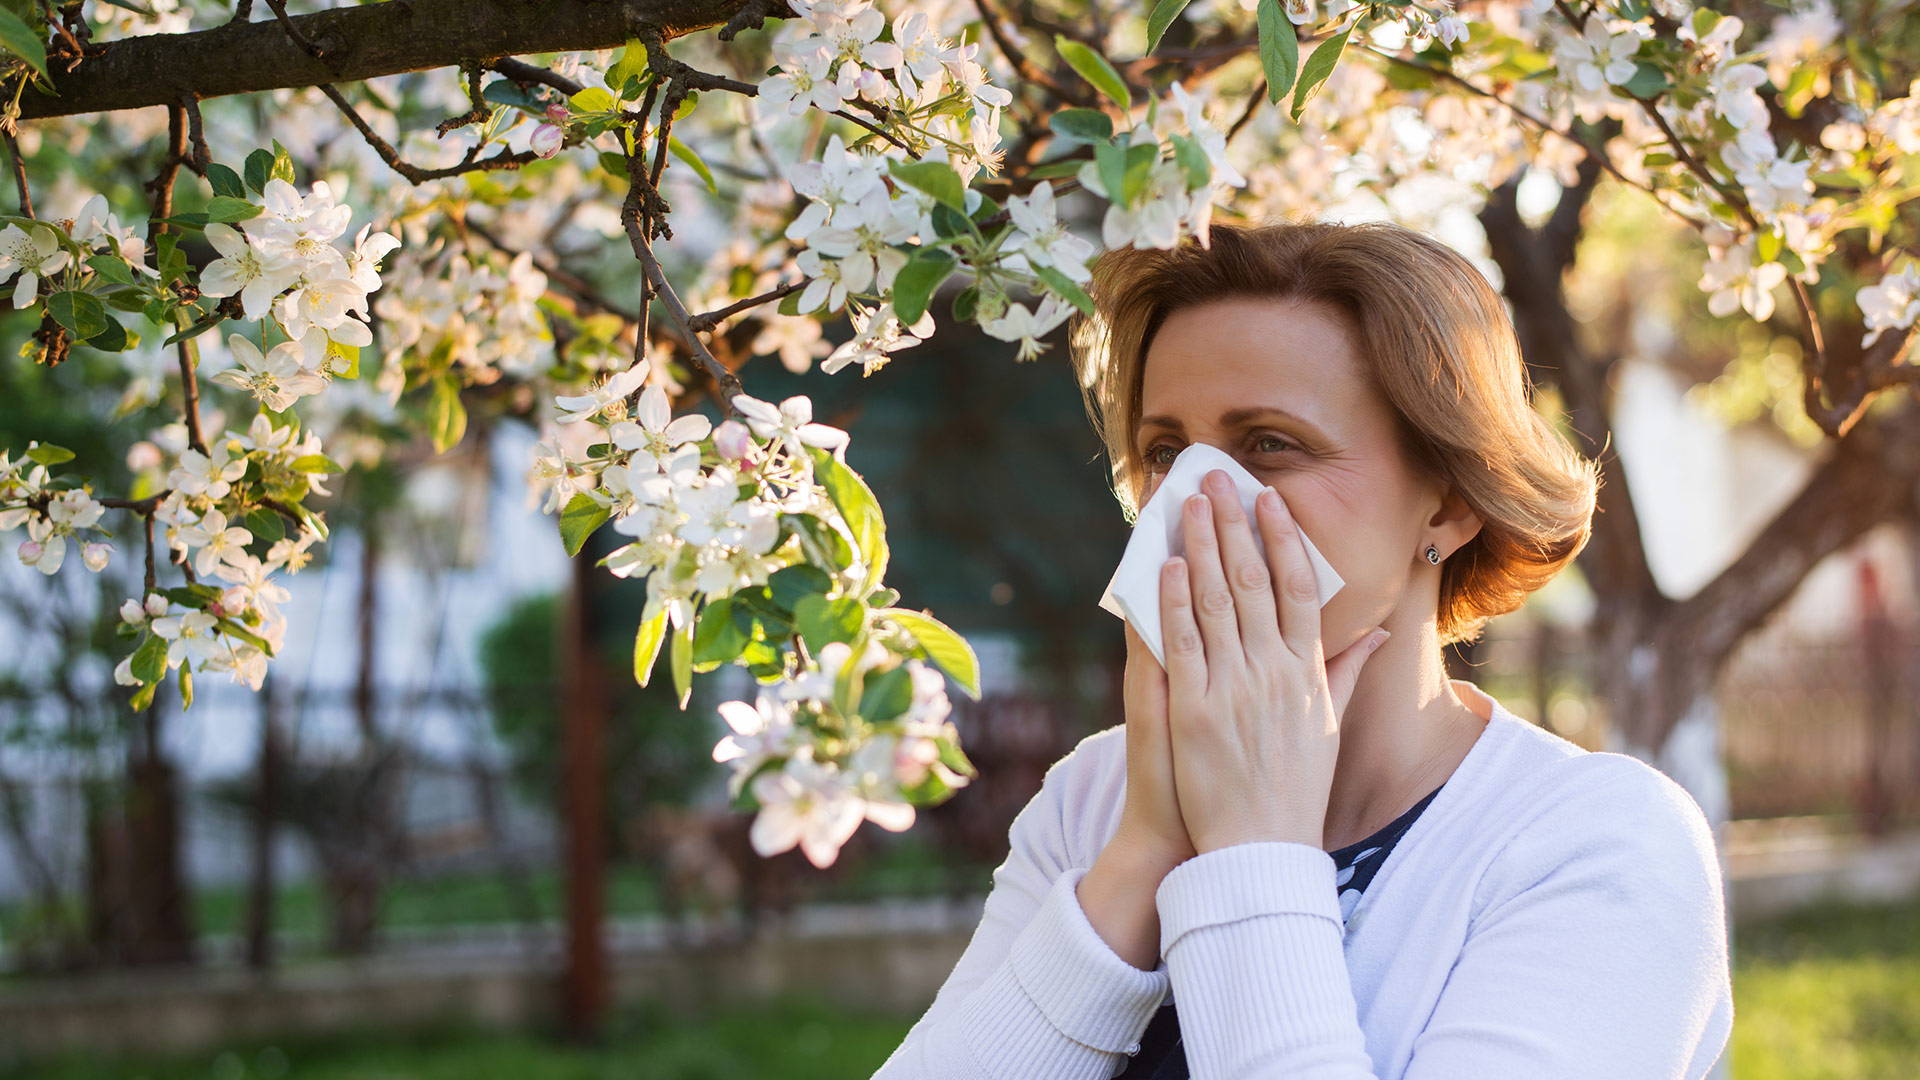 Stress, age, environment – all these things can affect your seasonal allergies. See what one Atrium Health specialist says about allergies and how to treat them.